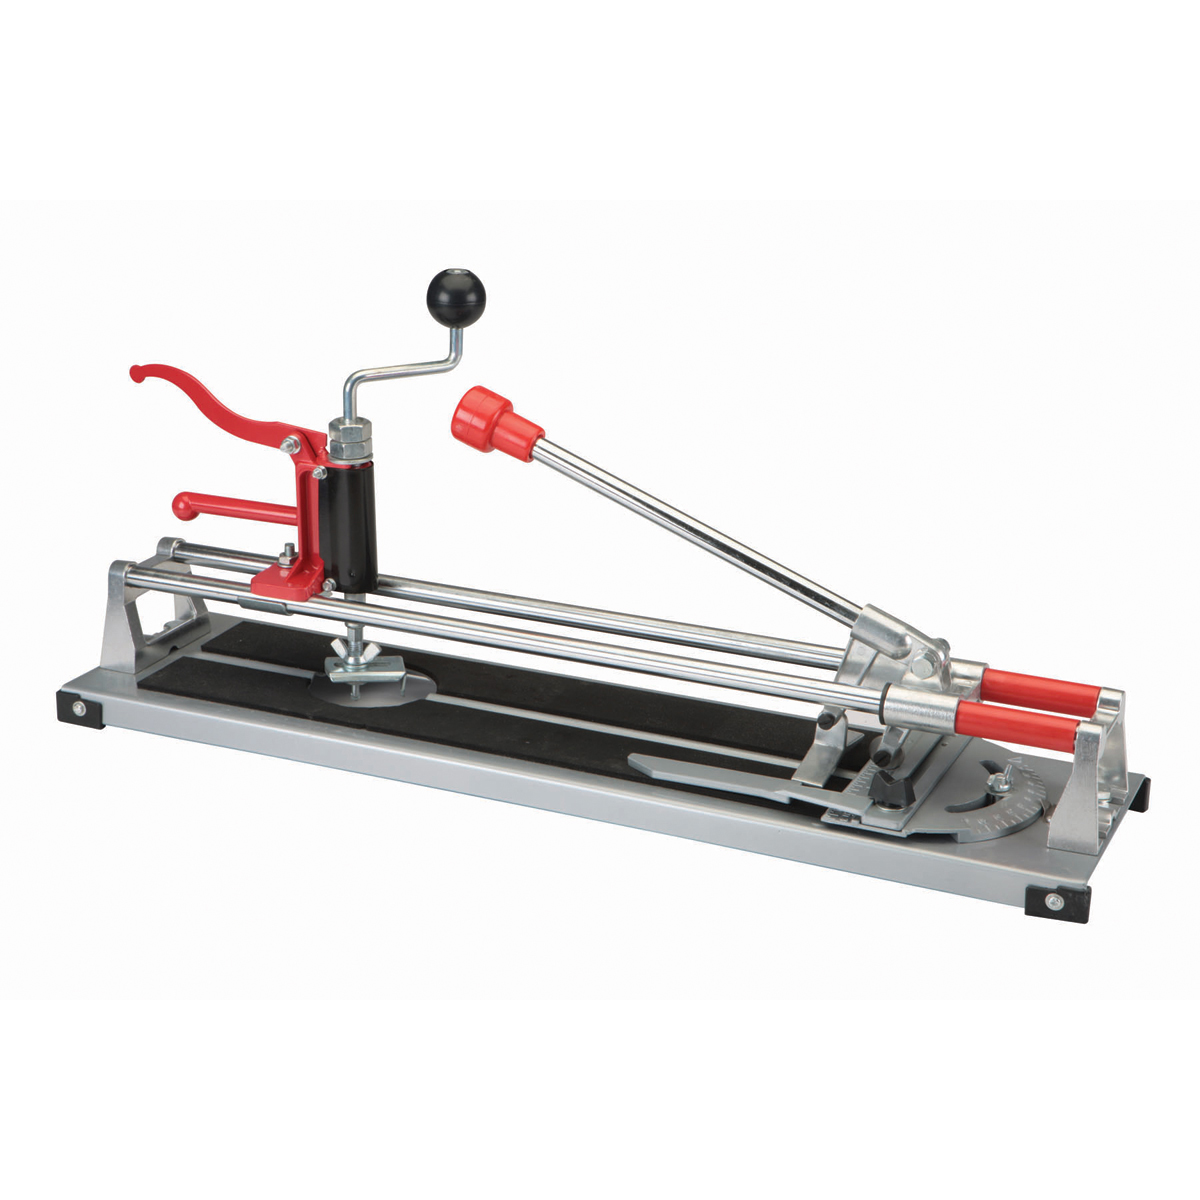 3 In 1 Heavy Duty Tile Cutter